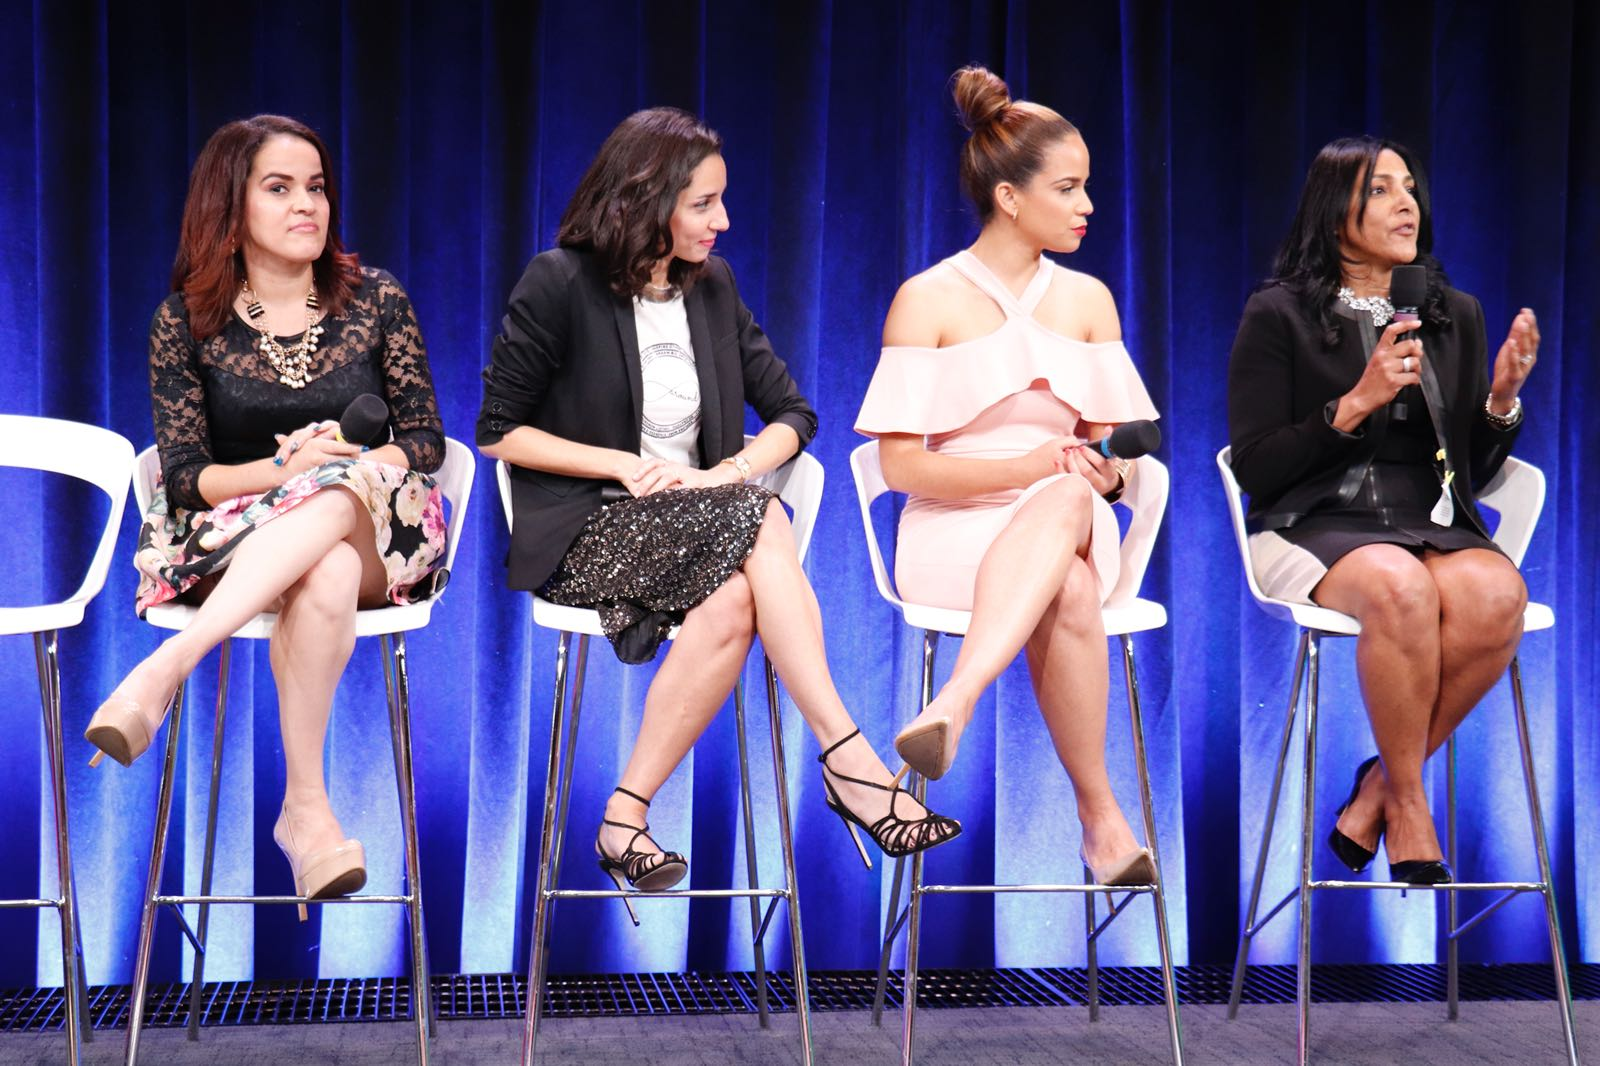 Latinas En New York Panel discussion at Google NYC